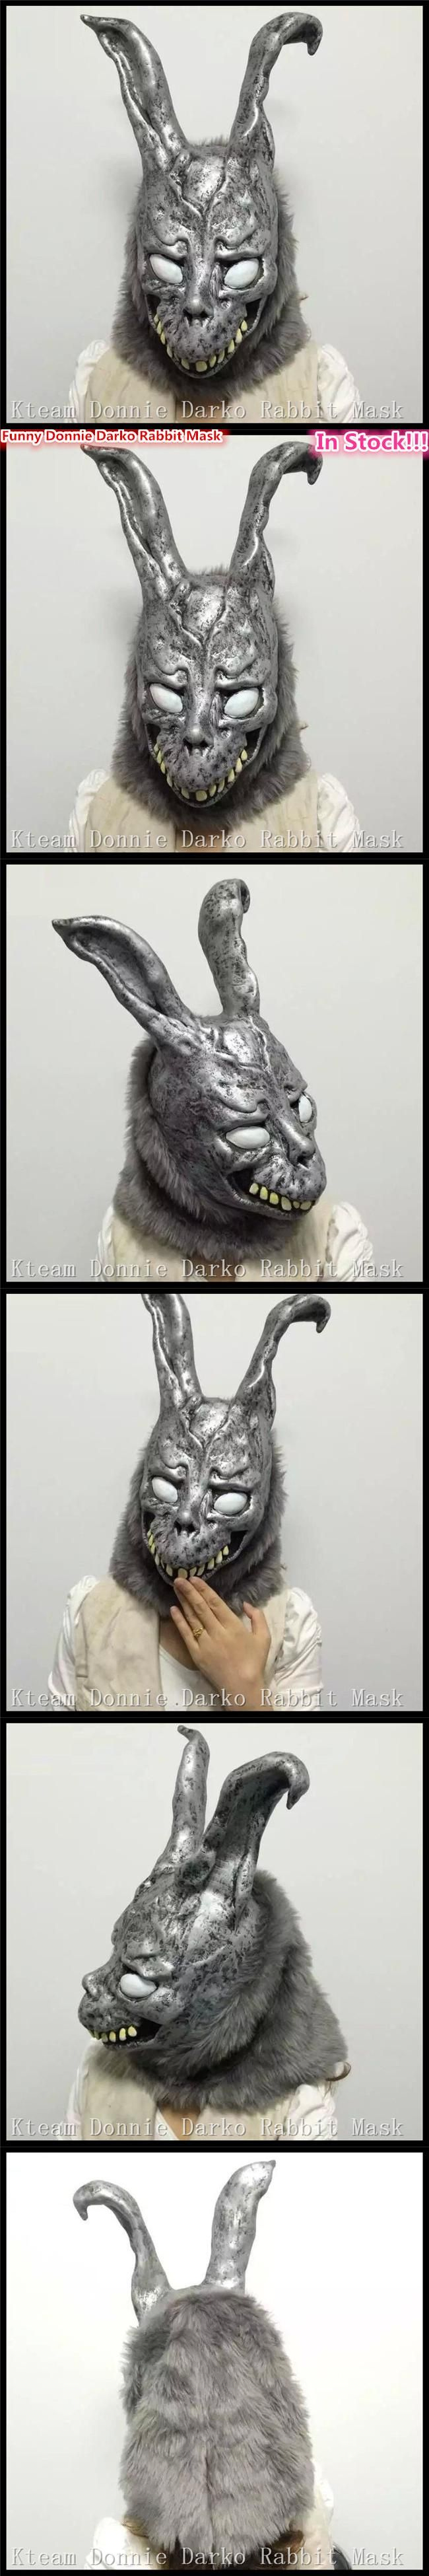 Halloween Party Cosplay Animal Full head Carnival Mask Scary Donnie Darko Rabbit Mask Horror Ghost Rabbit Zombie Mask in stock